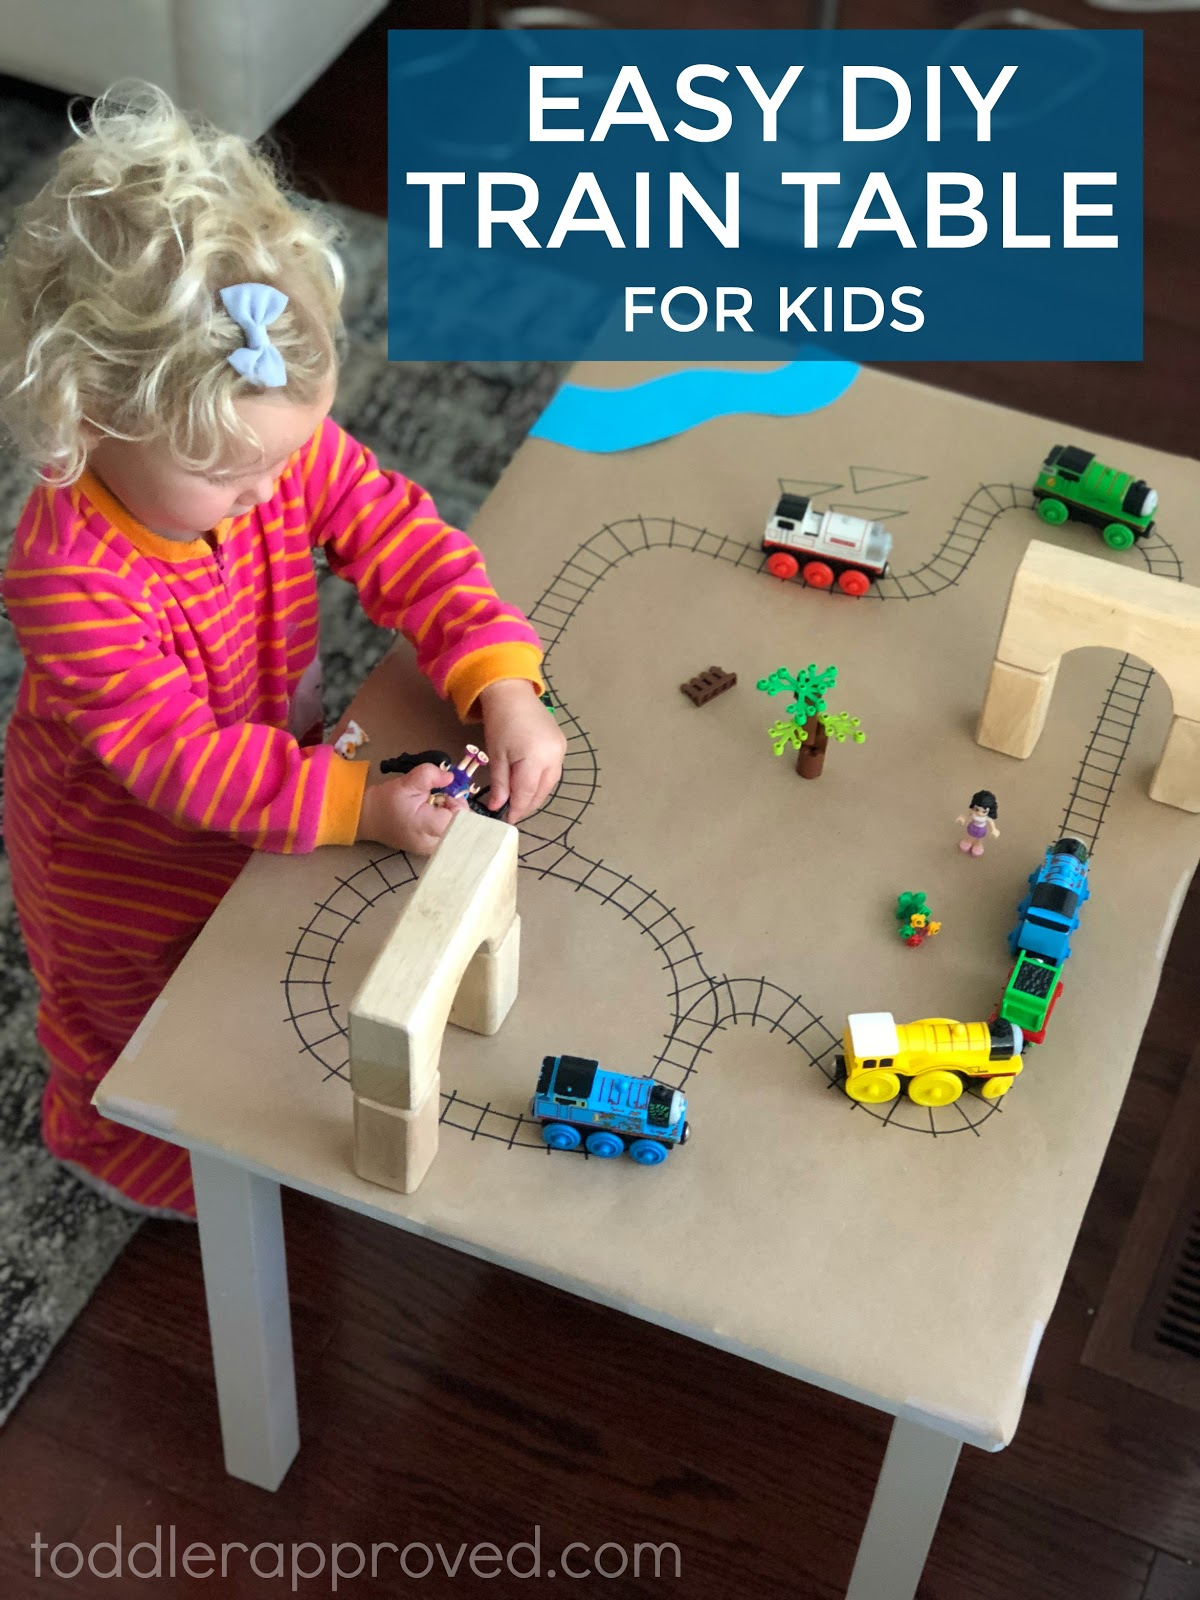 I Didnu0027t Feel Like Getting A New One, So We Made This Simple Homemade Train  Table For My Daughter To Use. It Has Been A Hit!